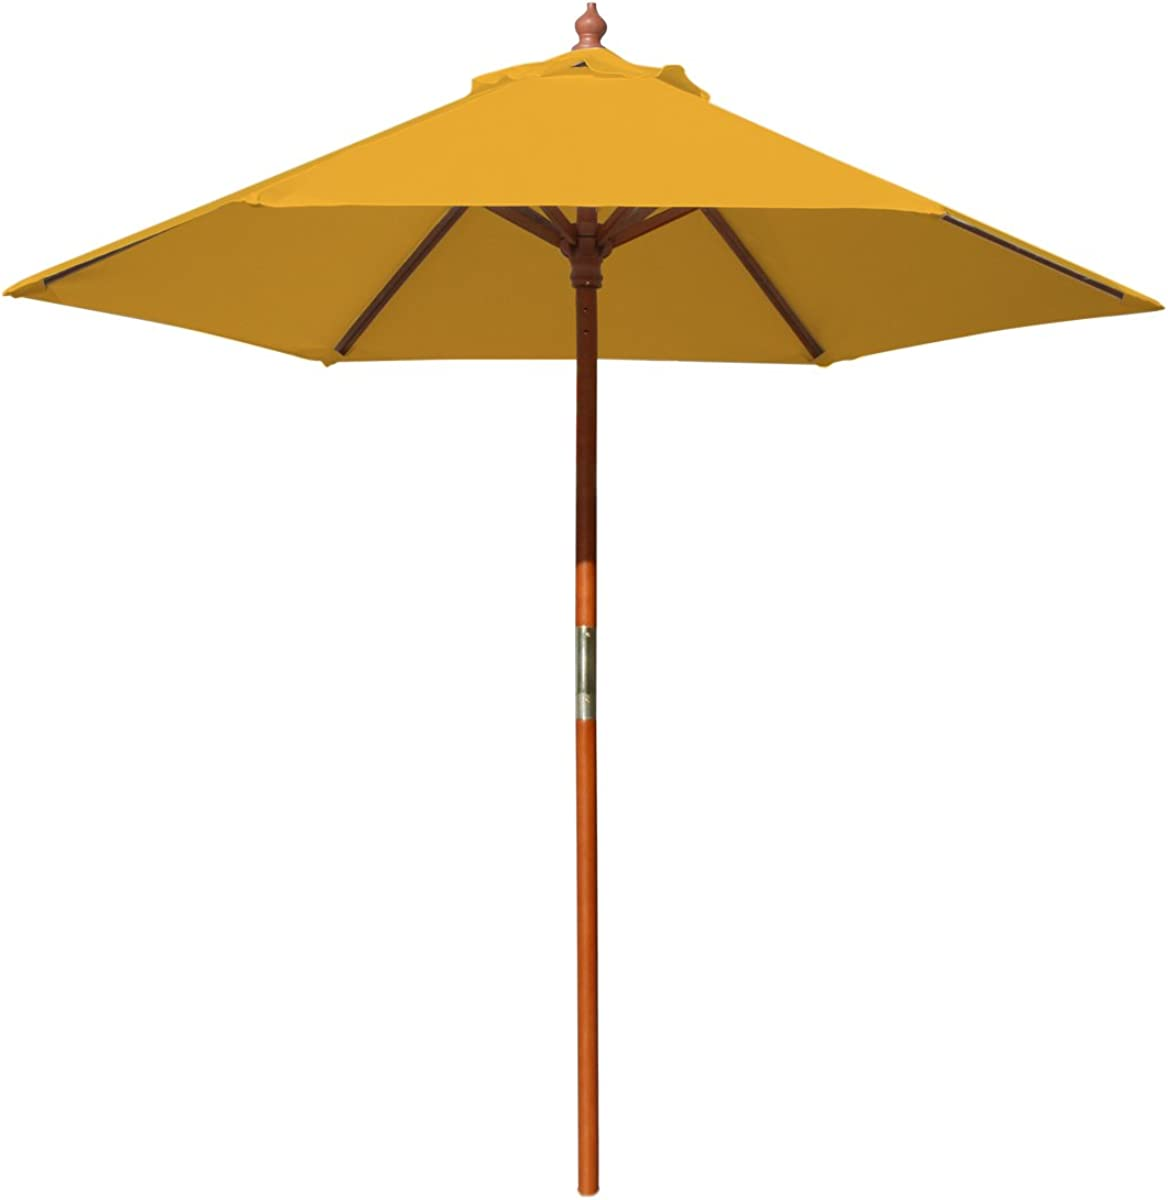 Best Pattio Umbrella 7ft, Outdoor Freestanding Market Patio Umbrella Wood Pole Round with Sturdy Fiber Ribs for Restaurant Food Table Cafe Backyard Garden Ground Lawn Deck Pool (Yellow)